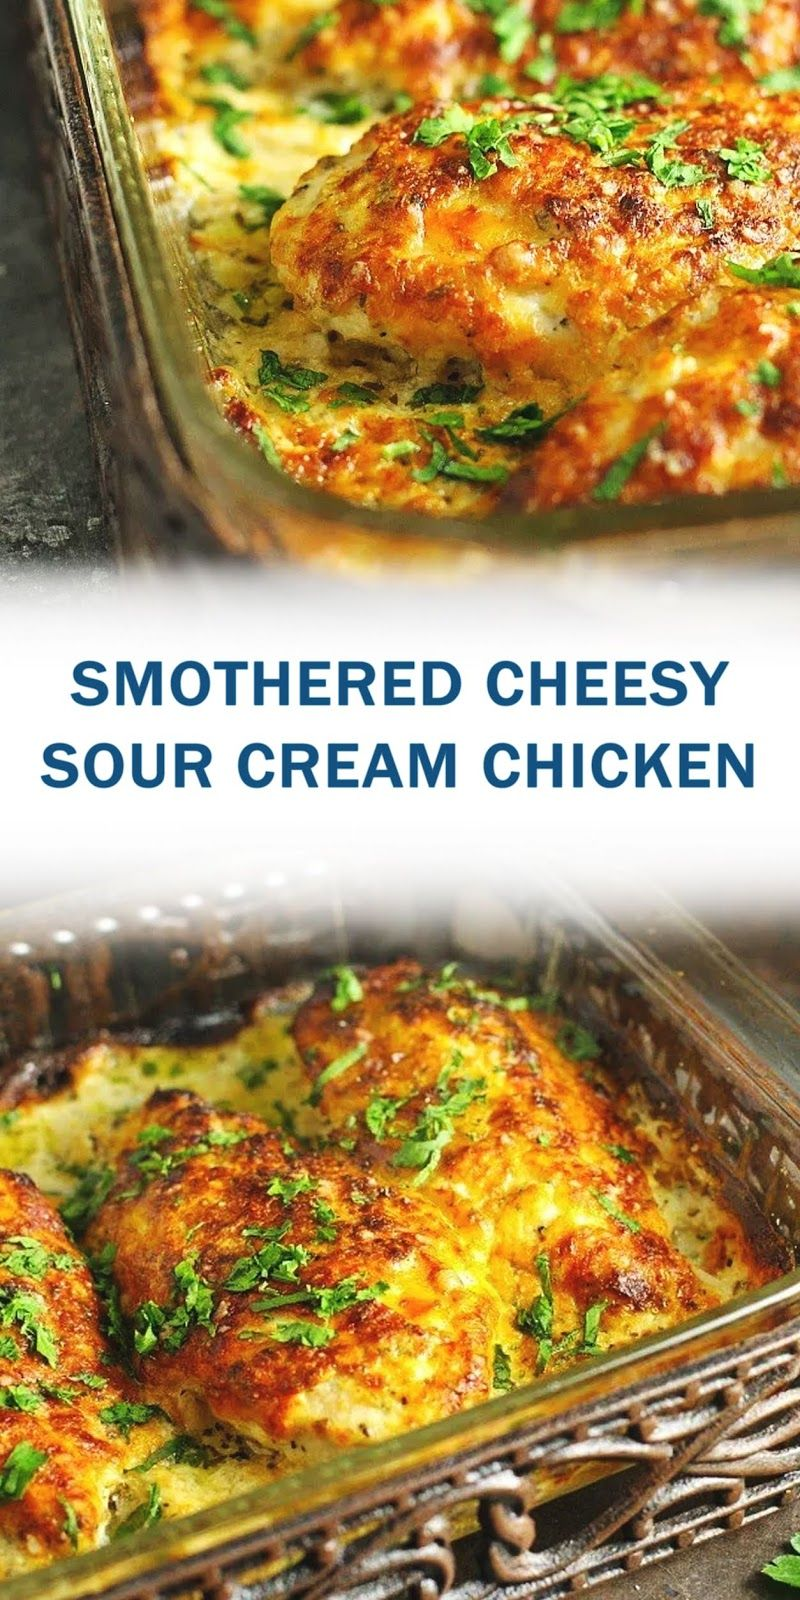 Smothered Cheesy Sour Cream Chicken Ah Minegud Belish In 2020 Easy Chicken Recipes Easy Chicken Dinner Recipes Best Chicken Recipes